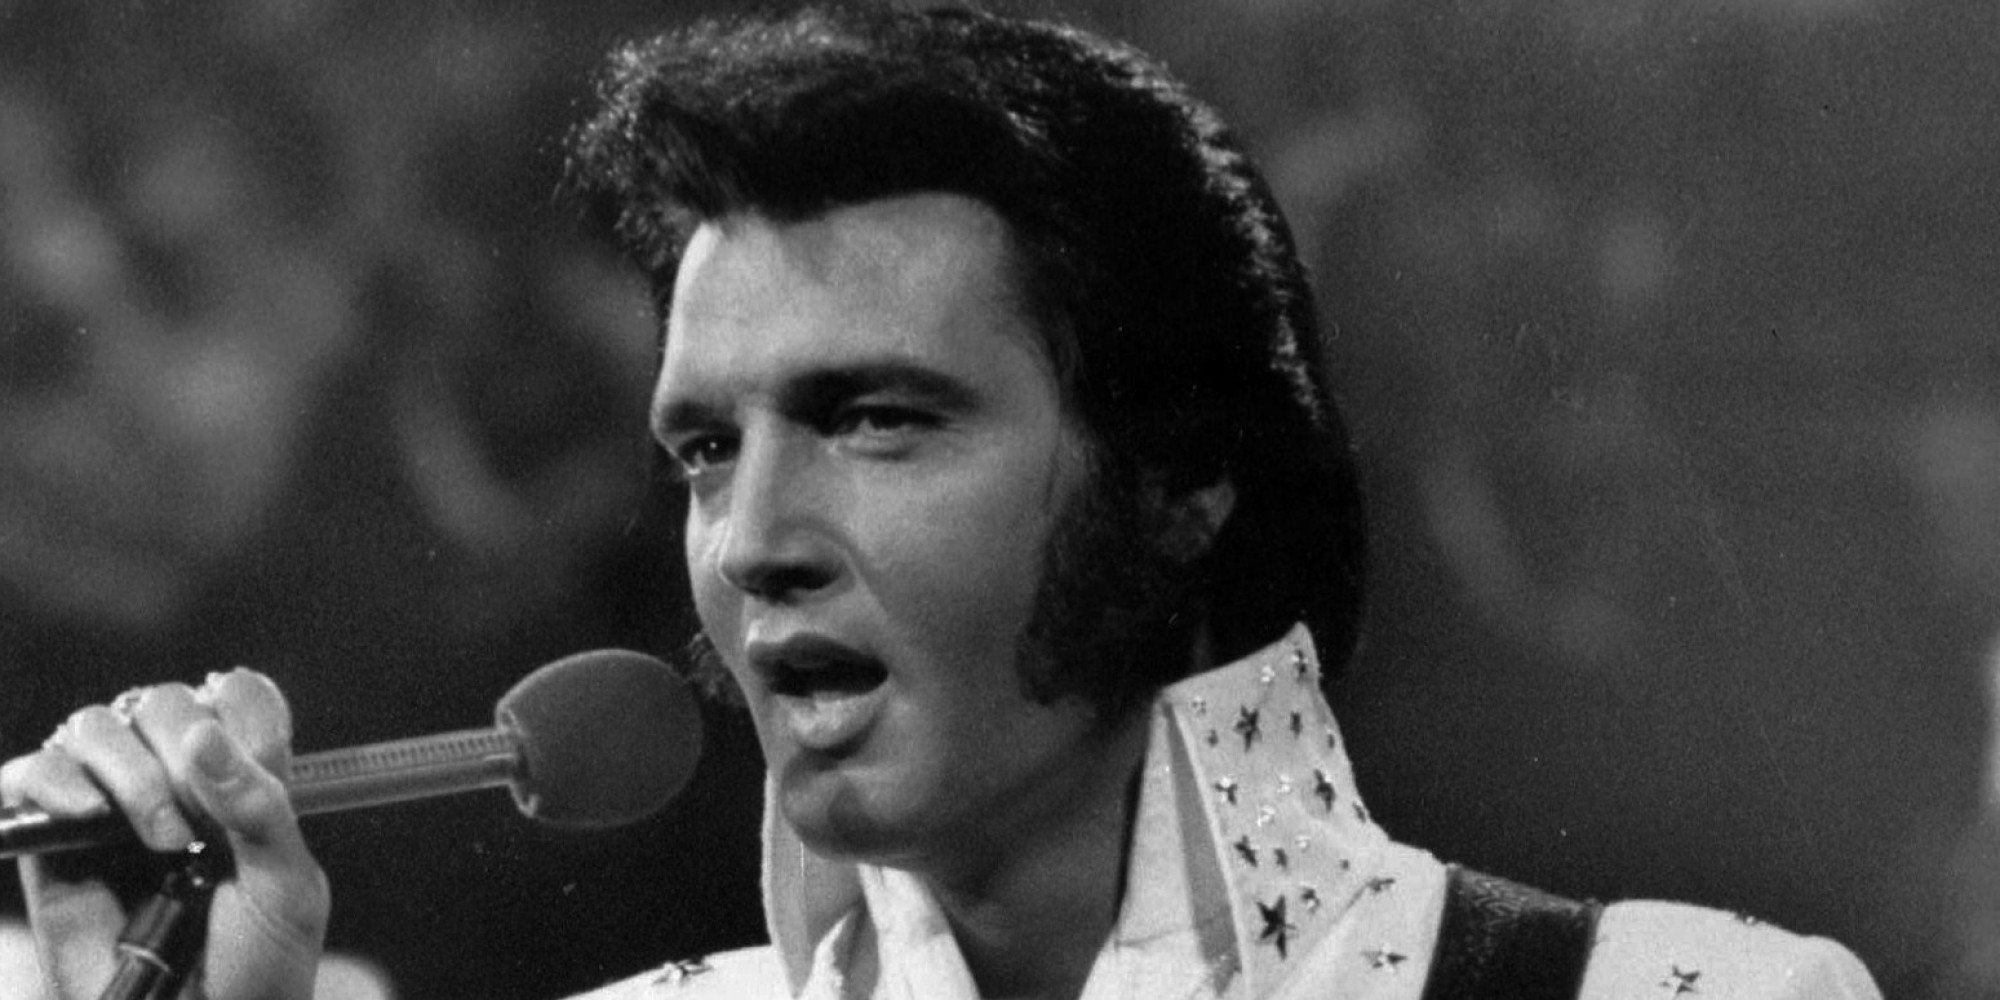 ** FILE ** Elvis Presley is shown in concert in the later part of his career. Wade Jones, a fan of Elvis Presley, auctioned three tablespoons of water, but not the cup, from a 1977 Presley concert on the Internet auction site eBay this weekend. (AP Photo/File)